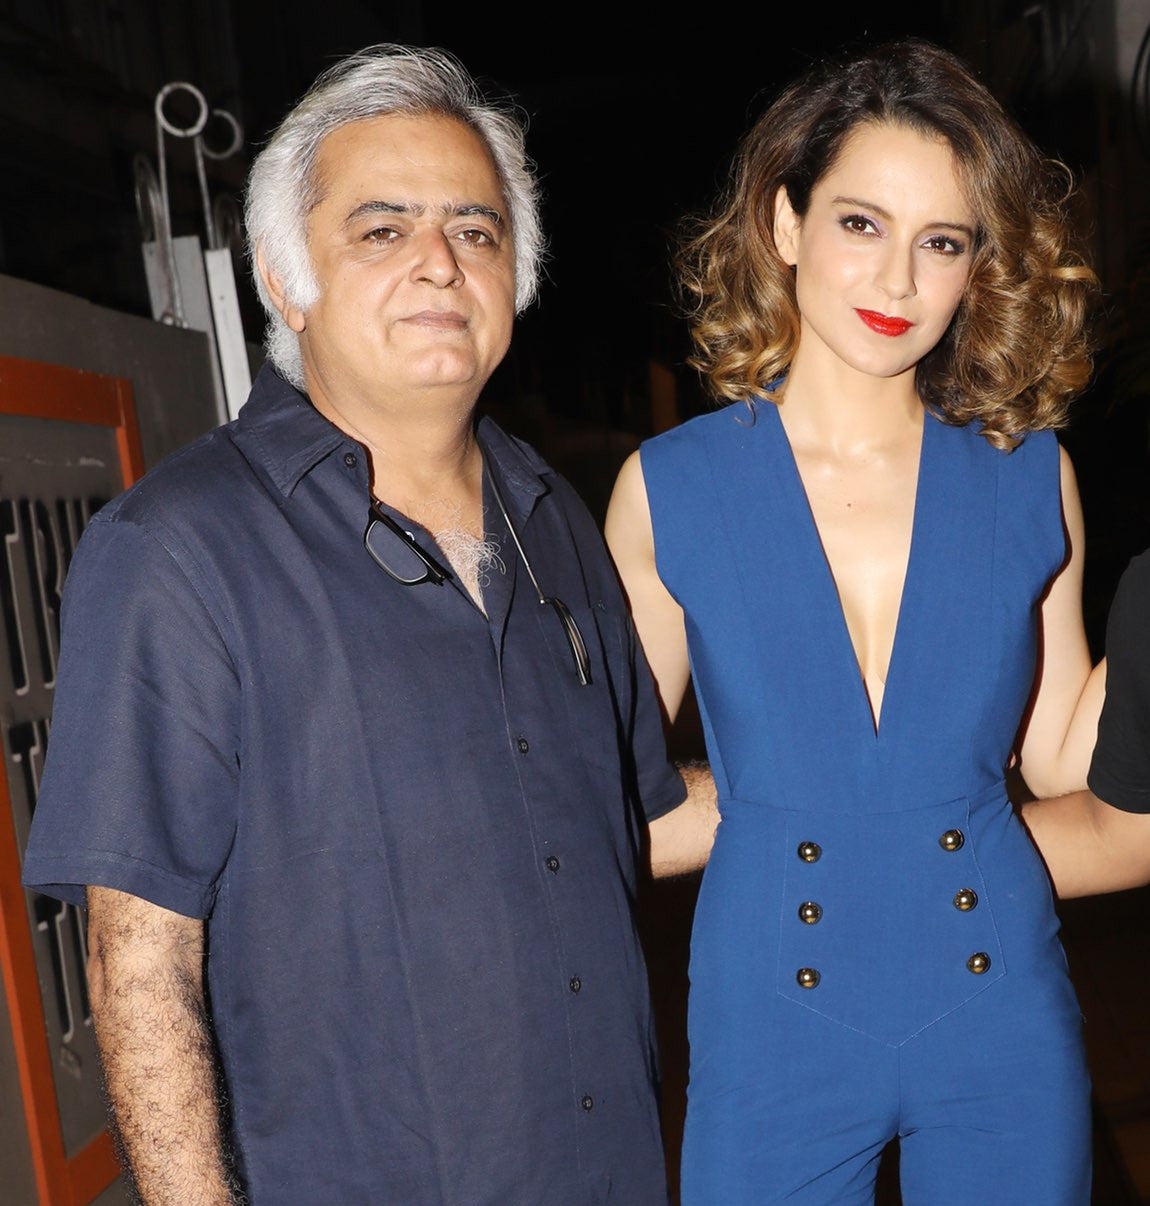 Kangana Ranaut looked striking in a cobalt blue jumpsuit by Michelle Mason